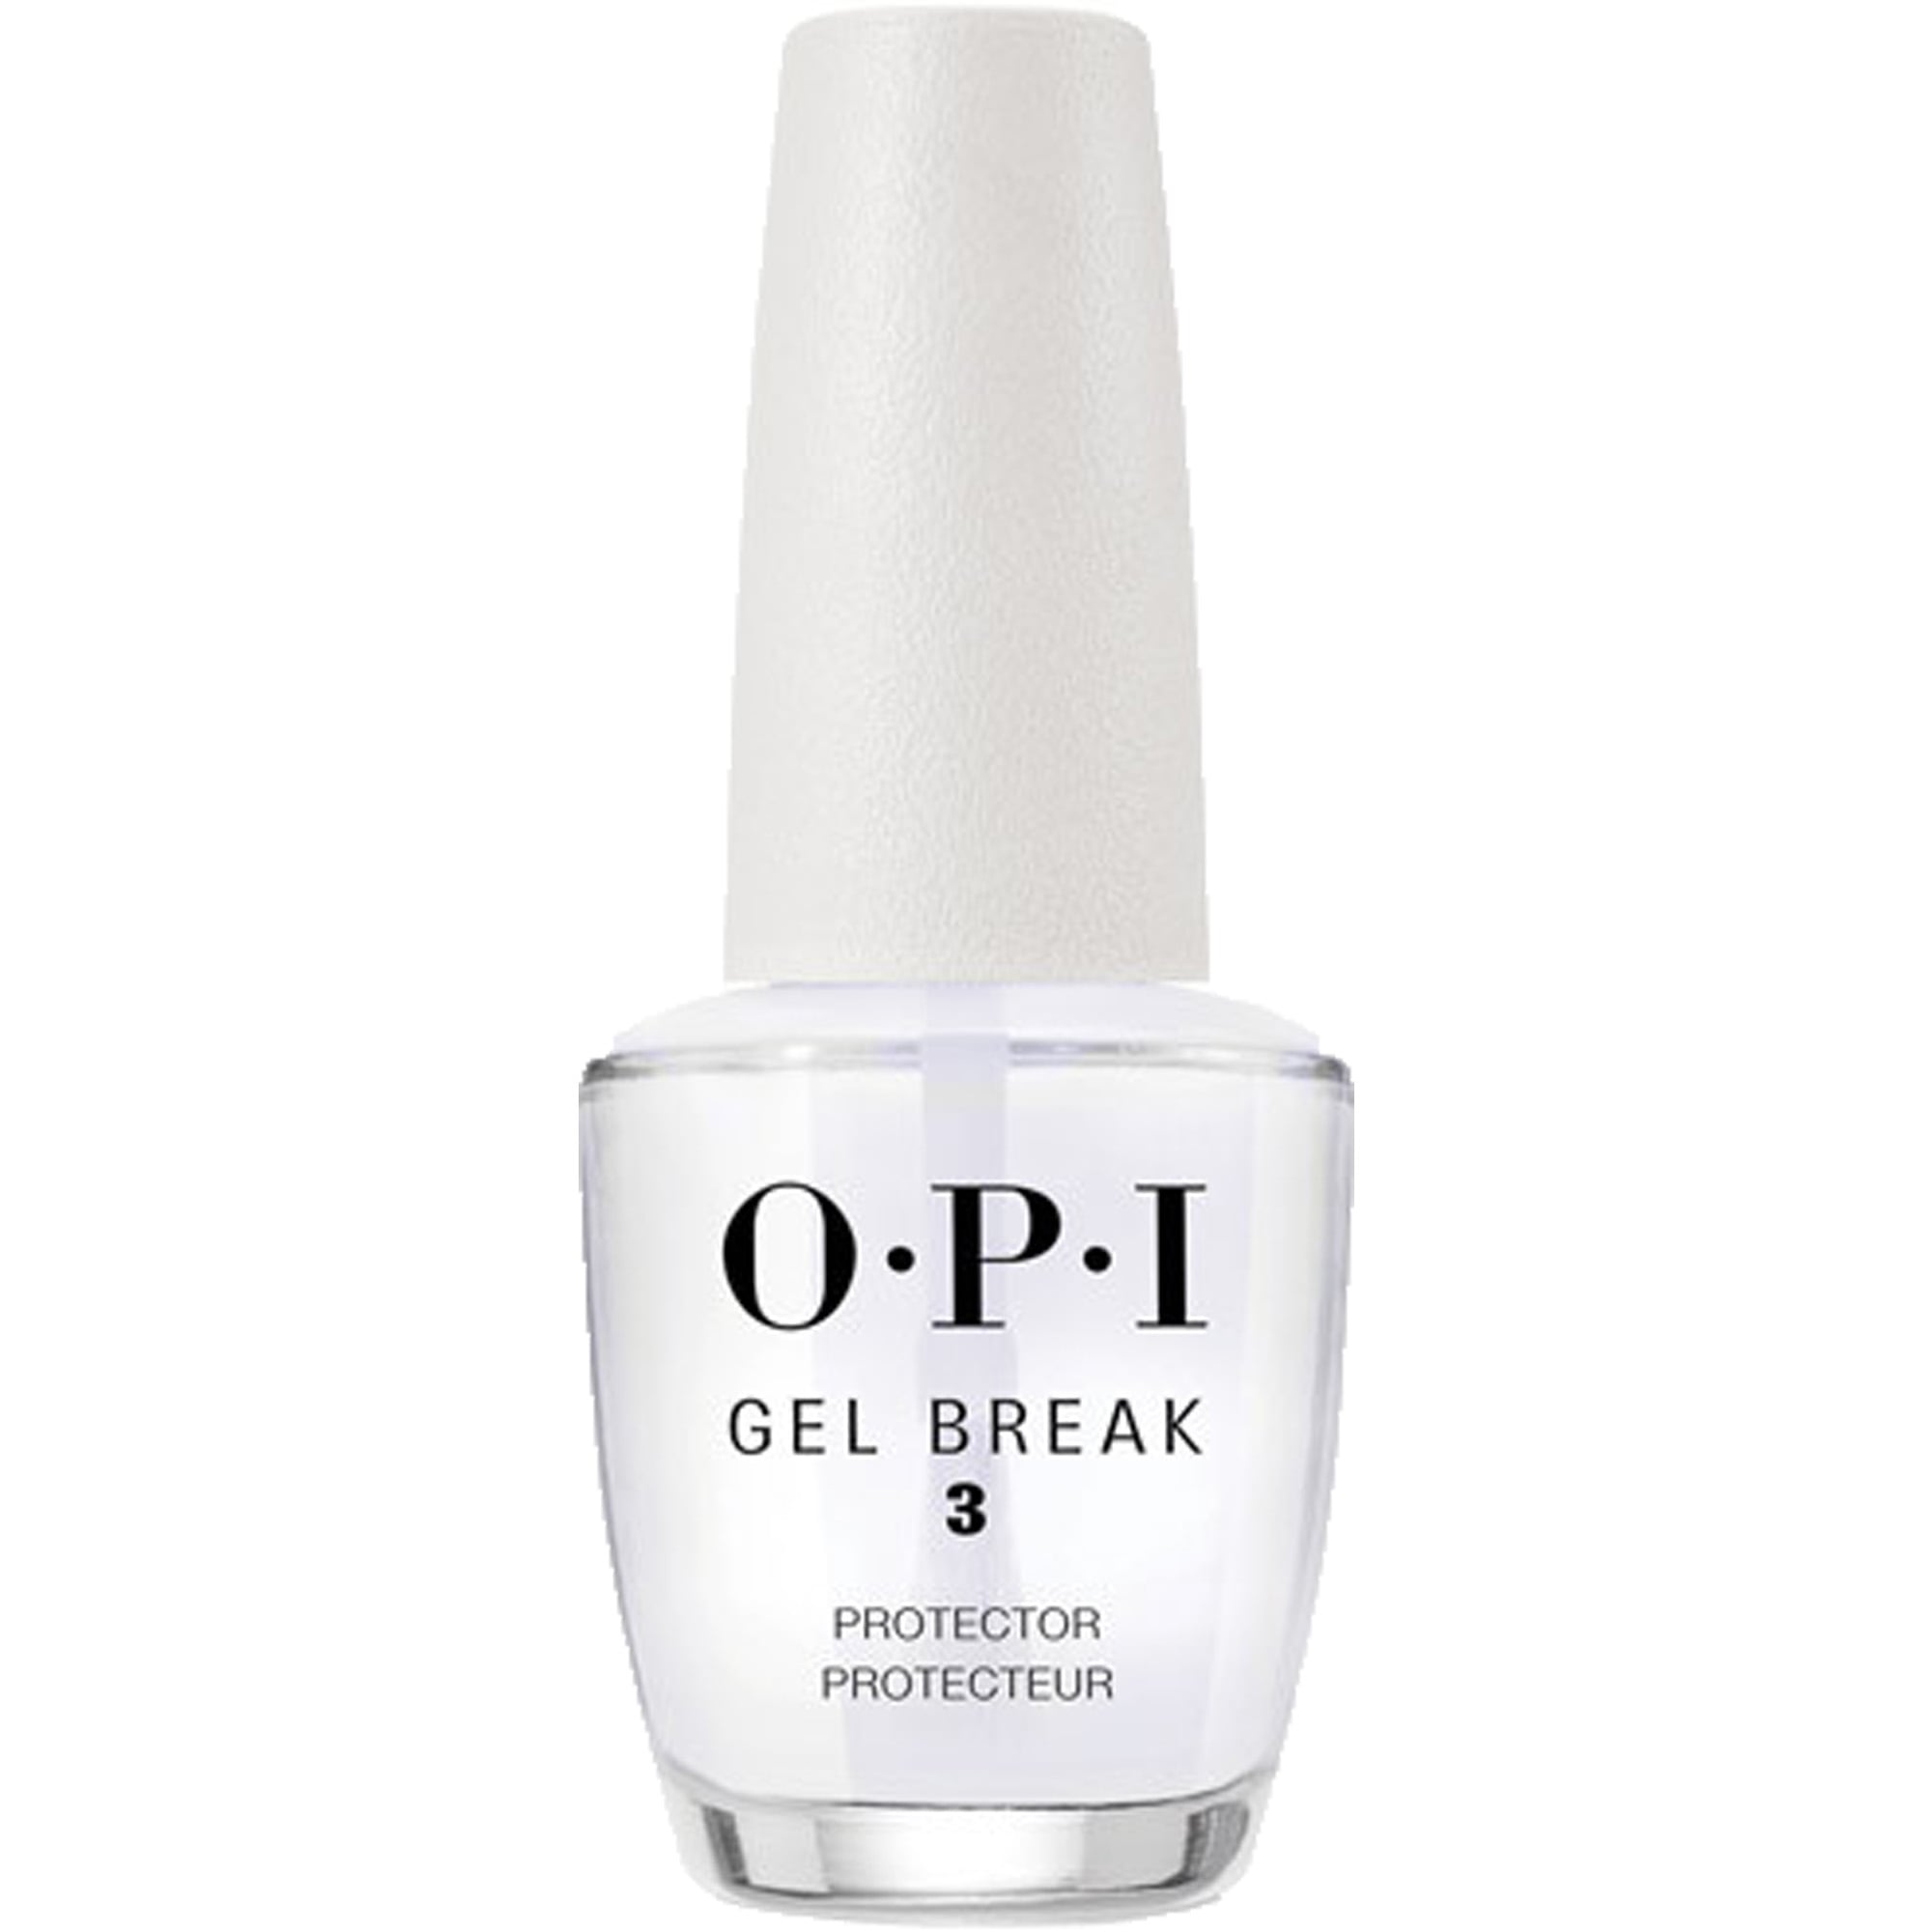 OPI Gel Break Trio Pack - Properly Pink (NT P01) 3 x 15ml